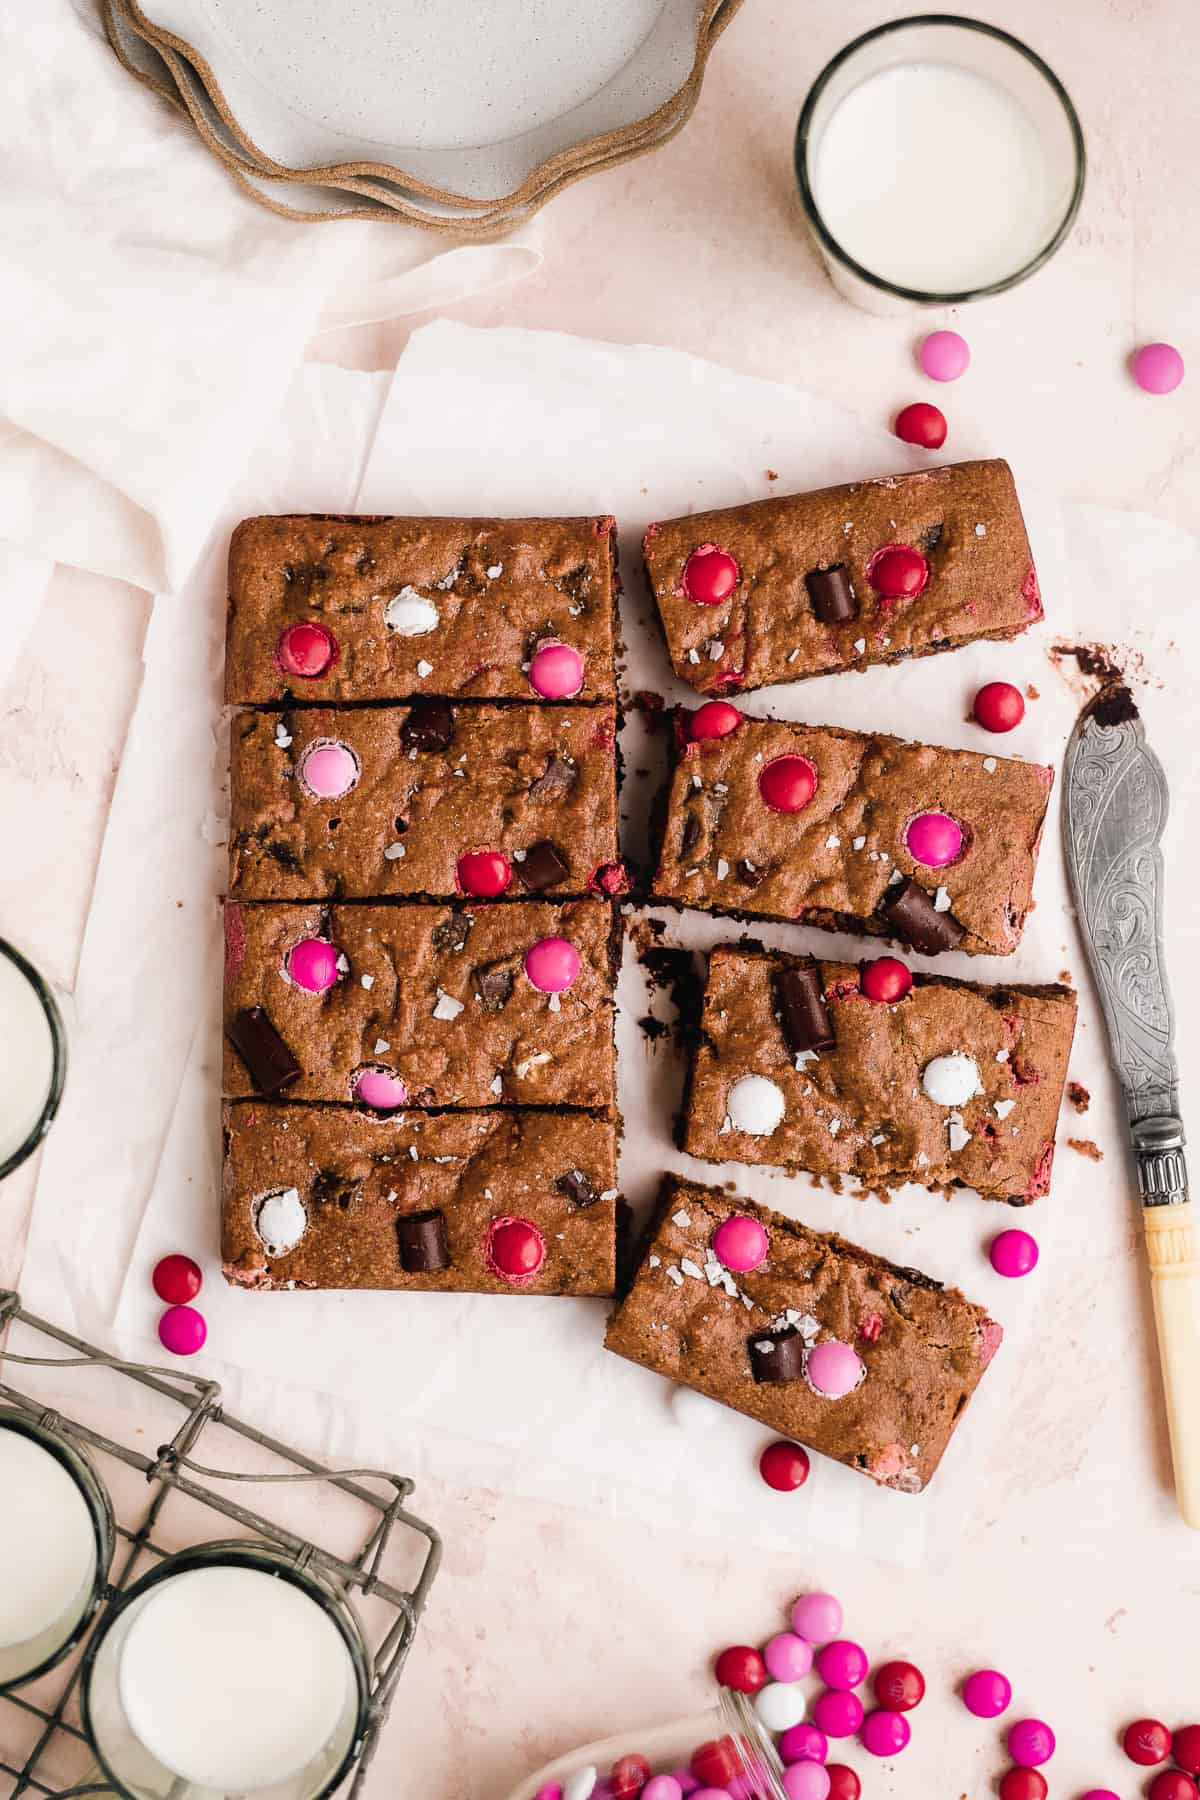 Cookies sliced into bars with red and pink M&Ms on top on white parchment paper.